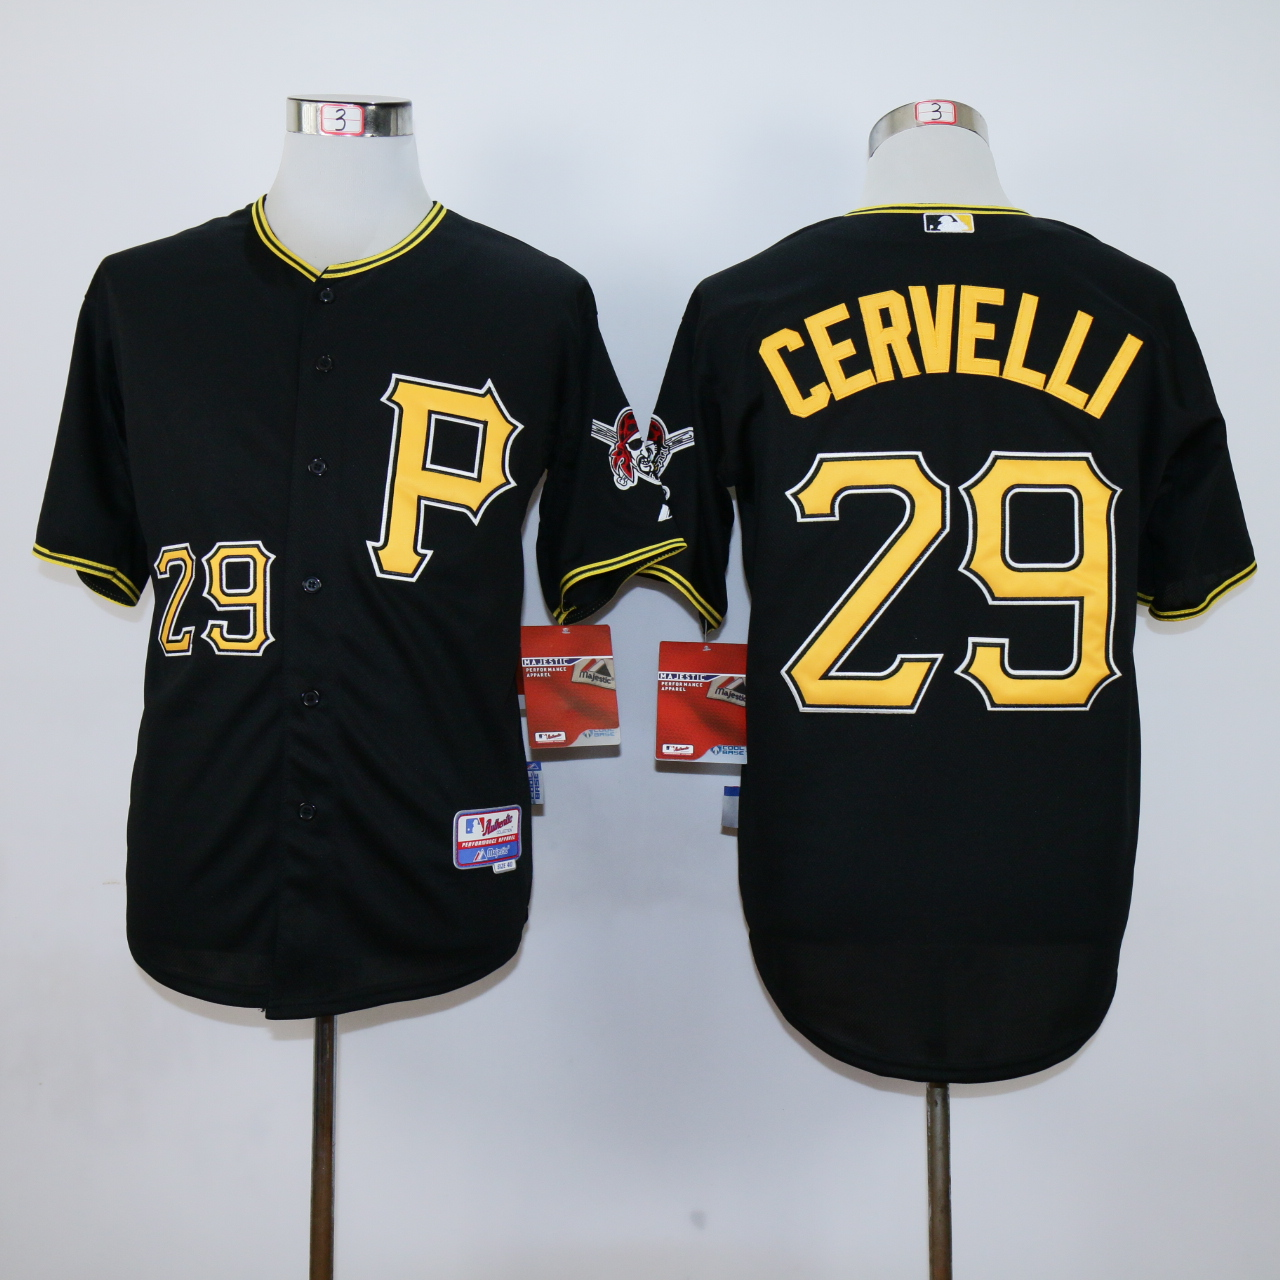 MLB Pittsburgh Pirates 29 Cervelli Black jerseys